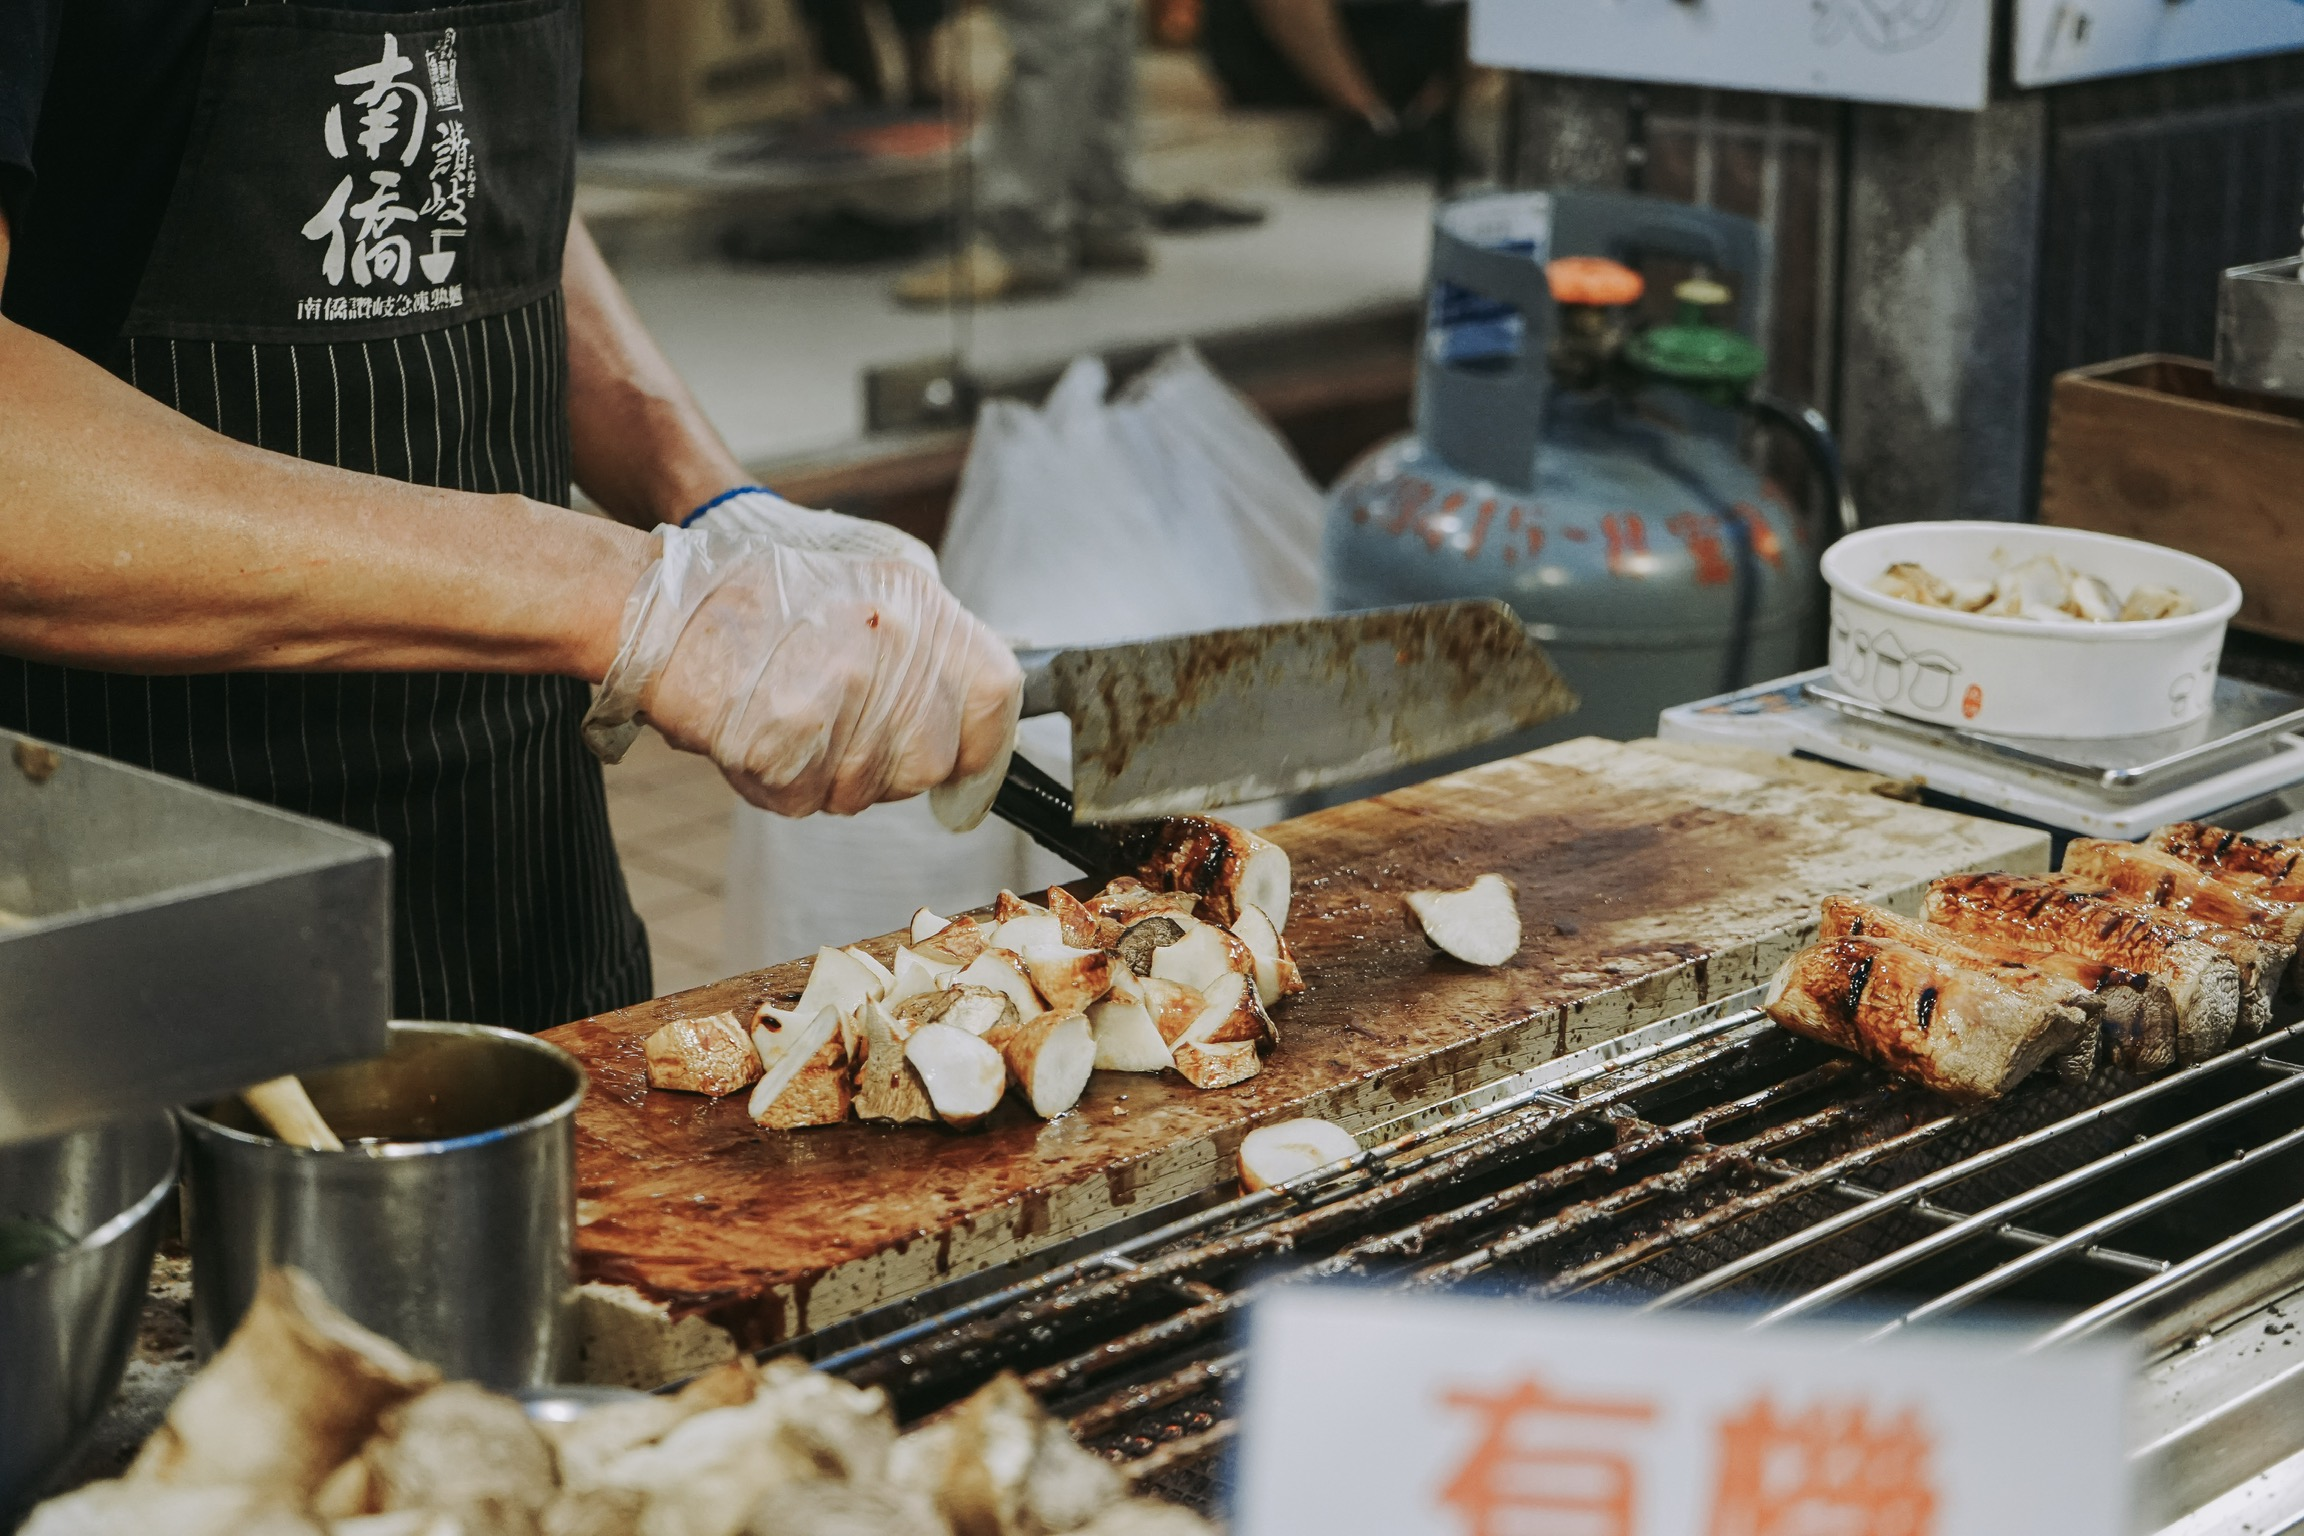 Taiwan Street Food: Local Eats And Where To Find Them